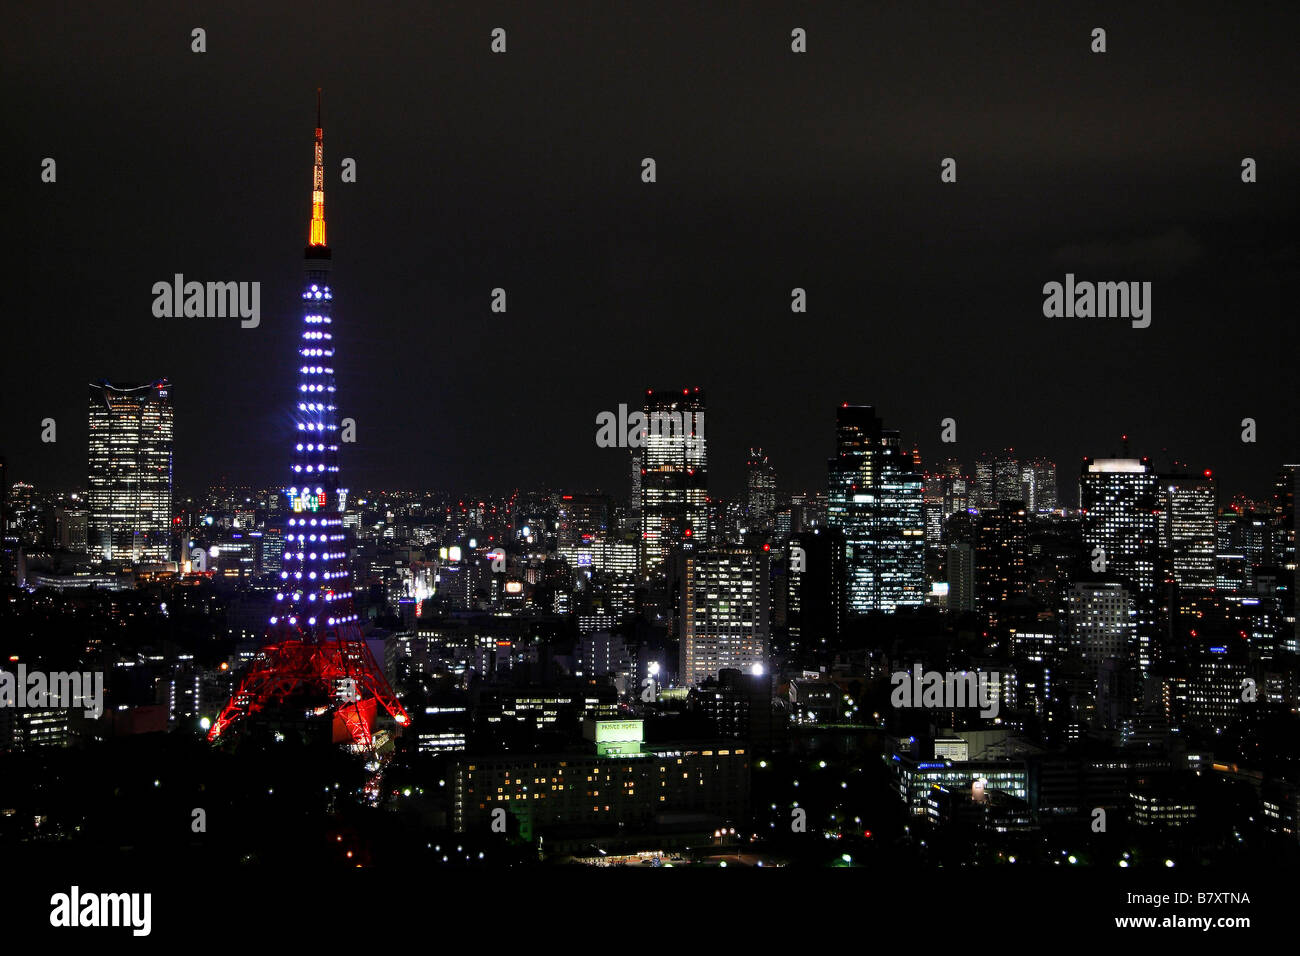 Against the backdrop of Tokyo s skyscrapers and night sky Tokyo Tower is lit  by 180 Landmark Lights on December 1 2008 marking the 50th anniversary of  Tokyo ... afb44fb0c793f